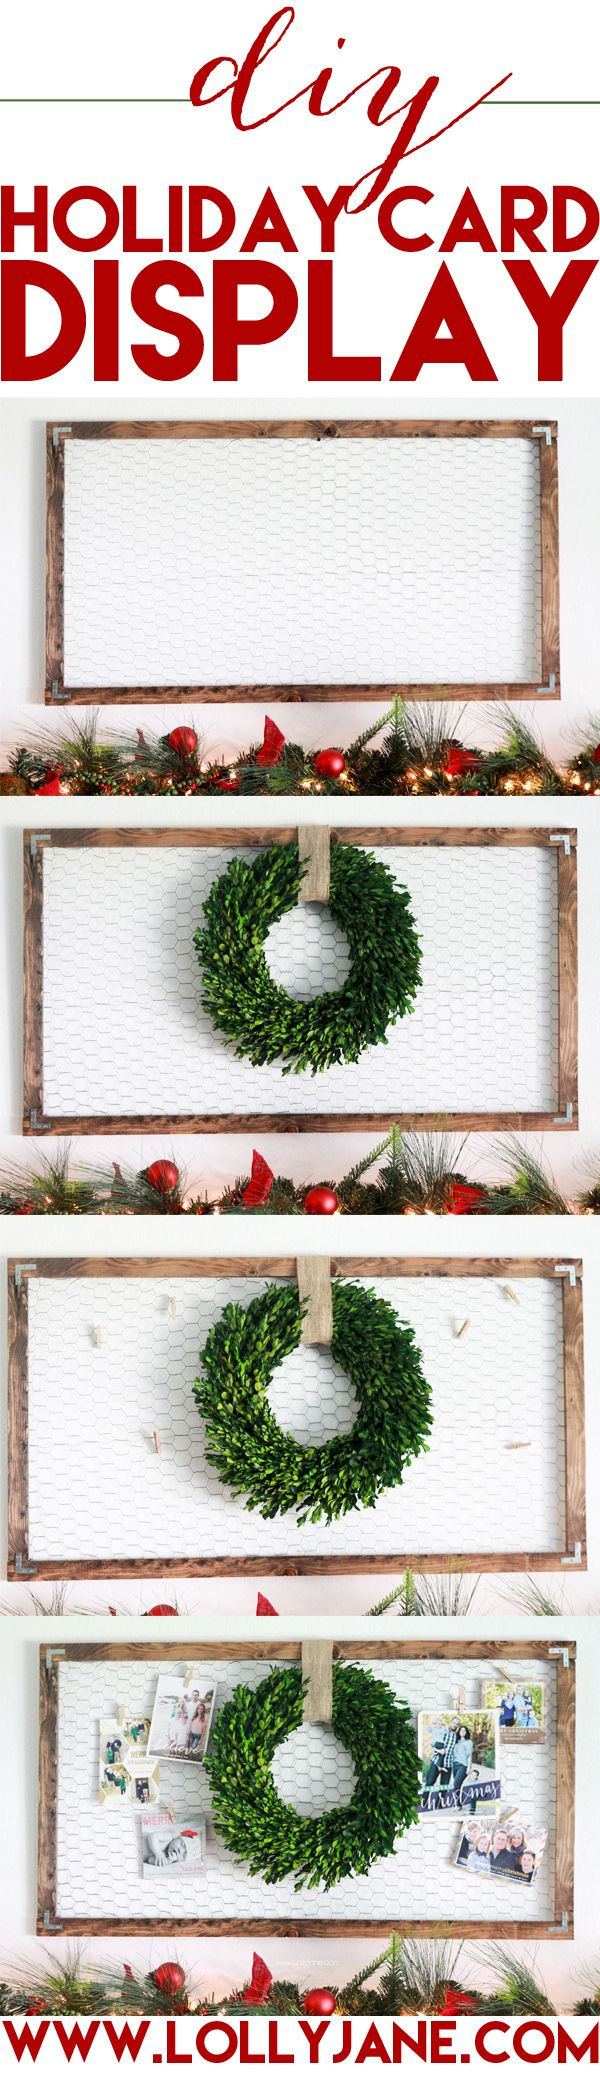 Diy Holiday Card Display So Easy To Make This Adorable Chicken